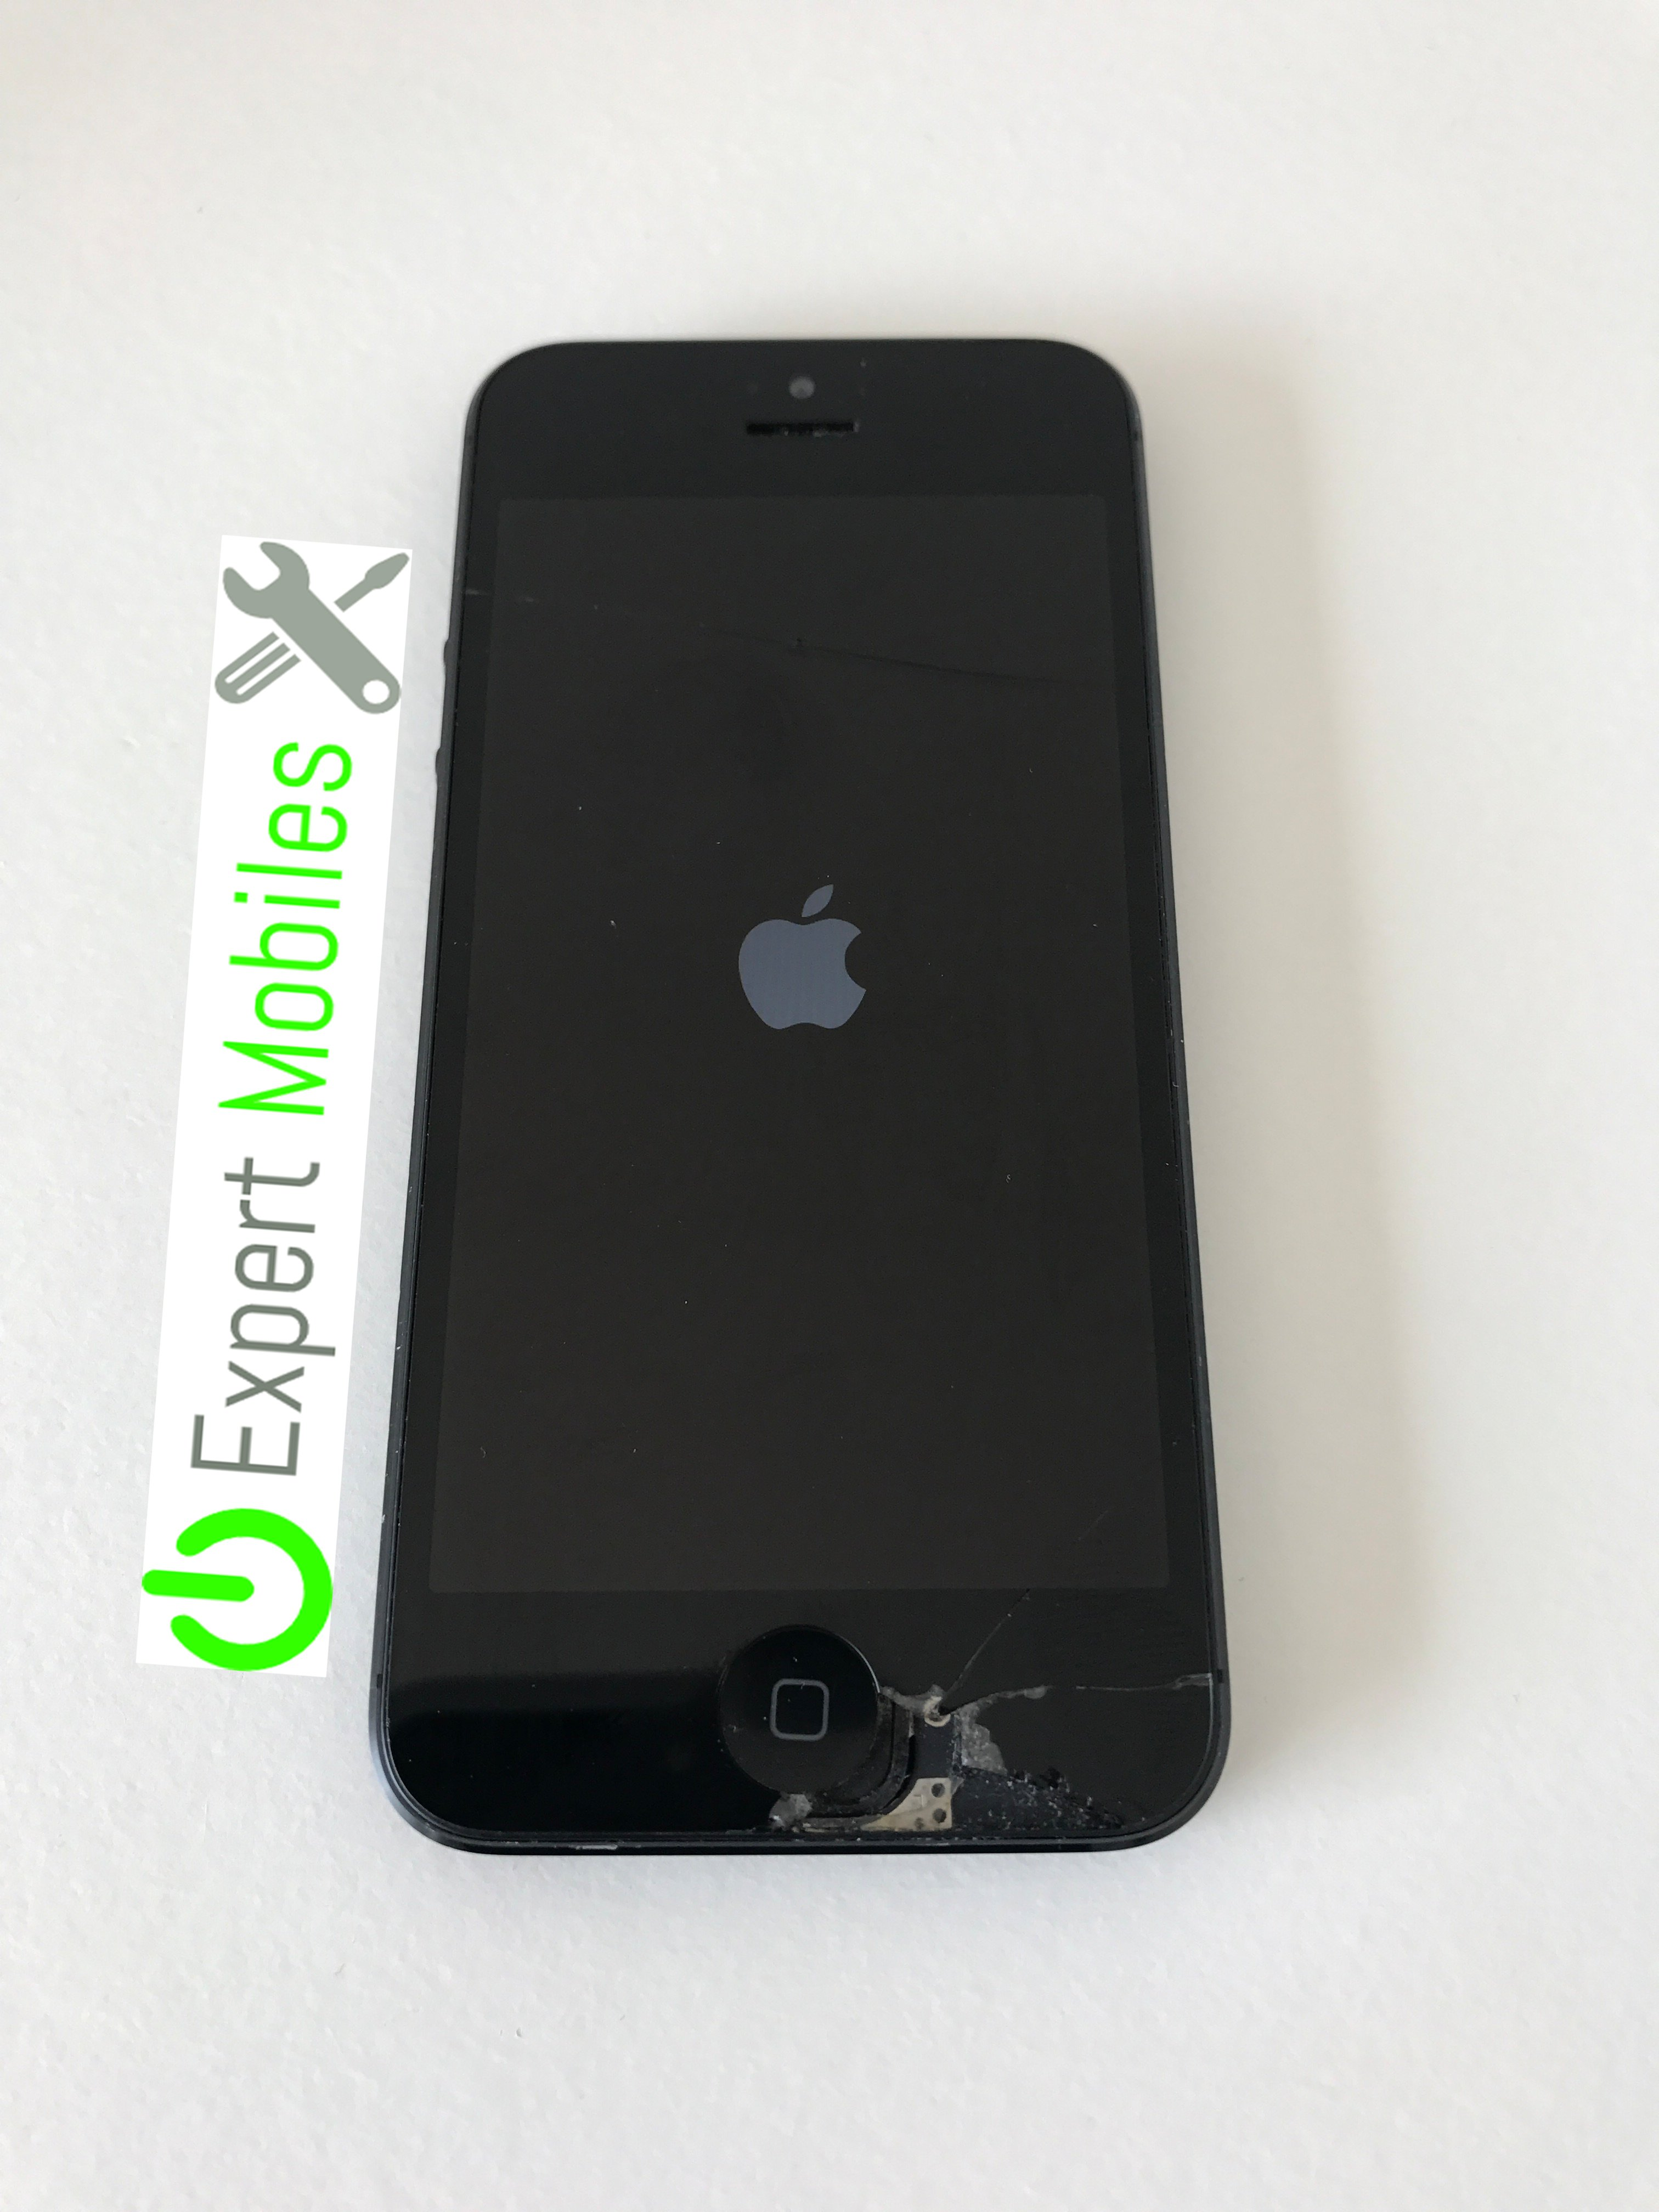 Remplacement cran iphone 5g expert mobiles - Reparation telephone lorient ...